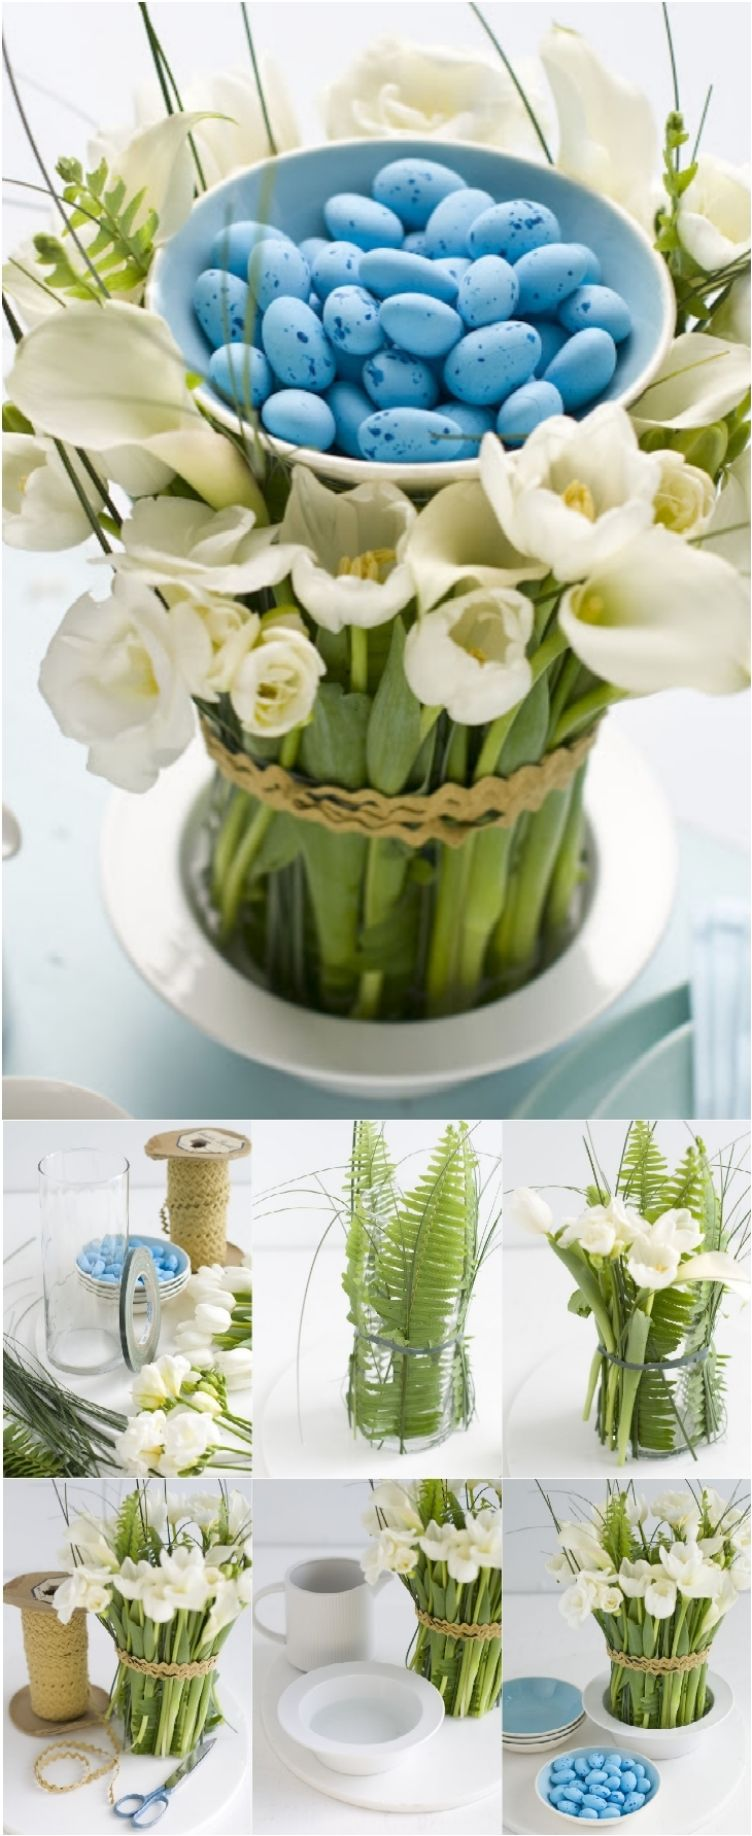 18 diy easter centerpieces to adorn your table with